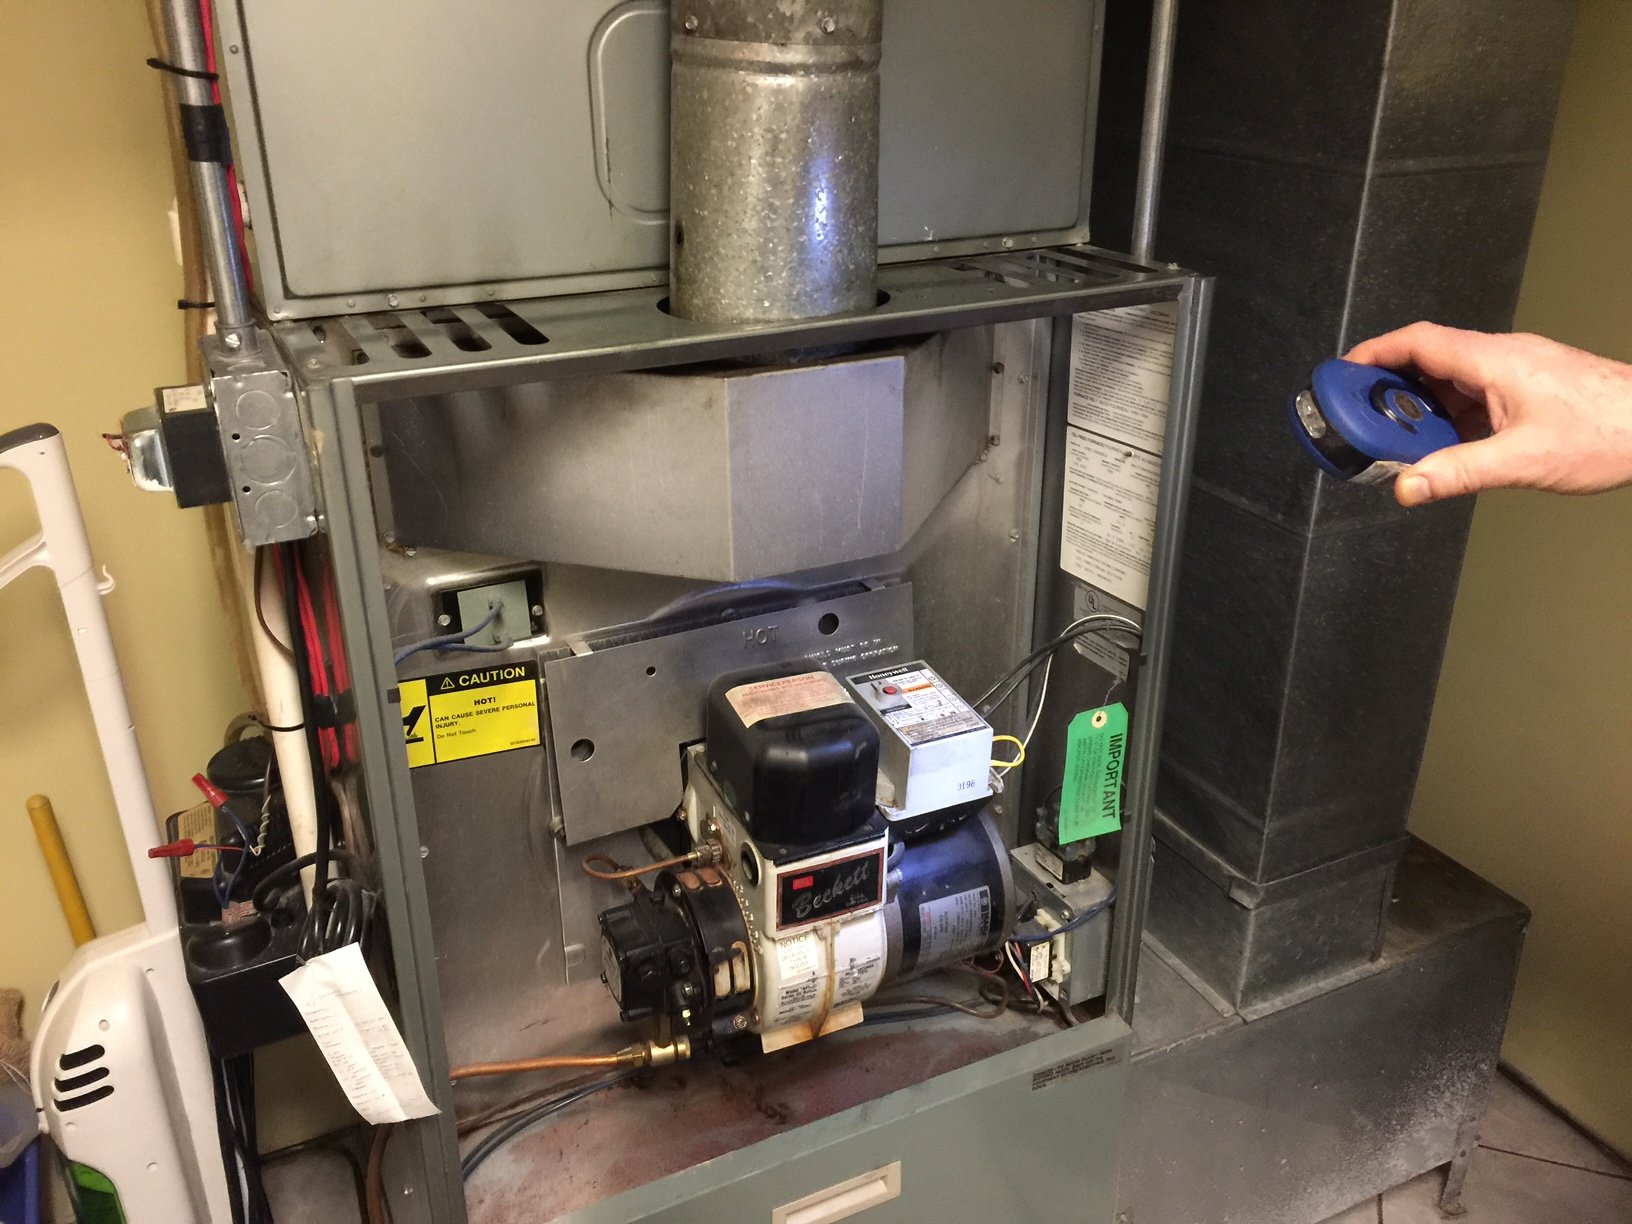 Sometimes Blower Does Not Turn on - Rheem Oil Forced Hot Air